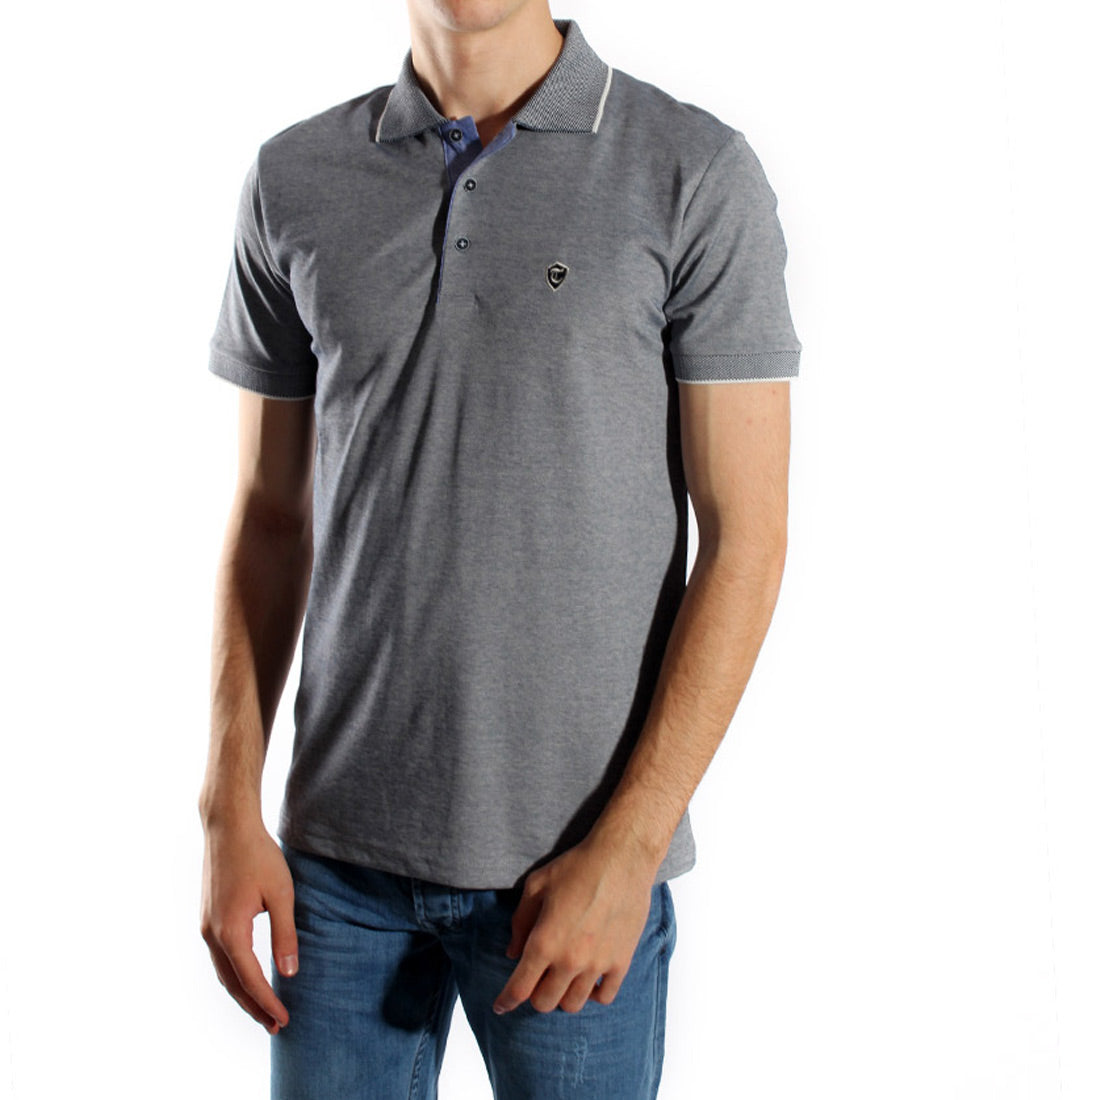 Men's polo t shirt styles- gray / made in Turkey -3371